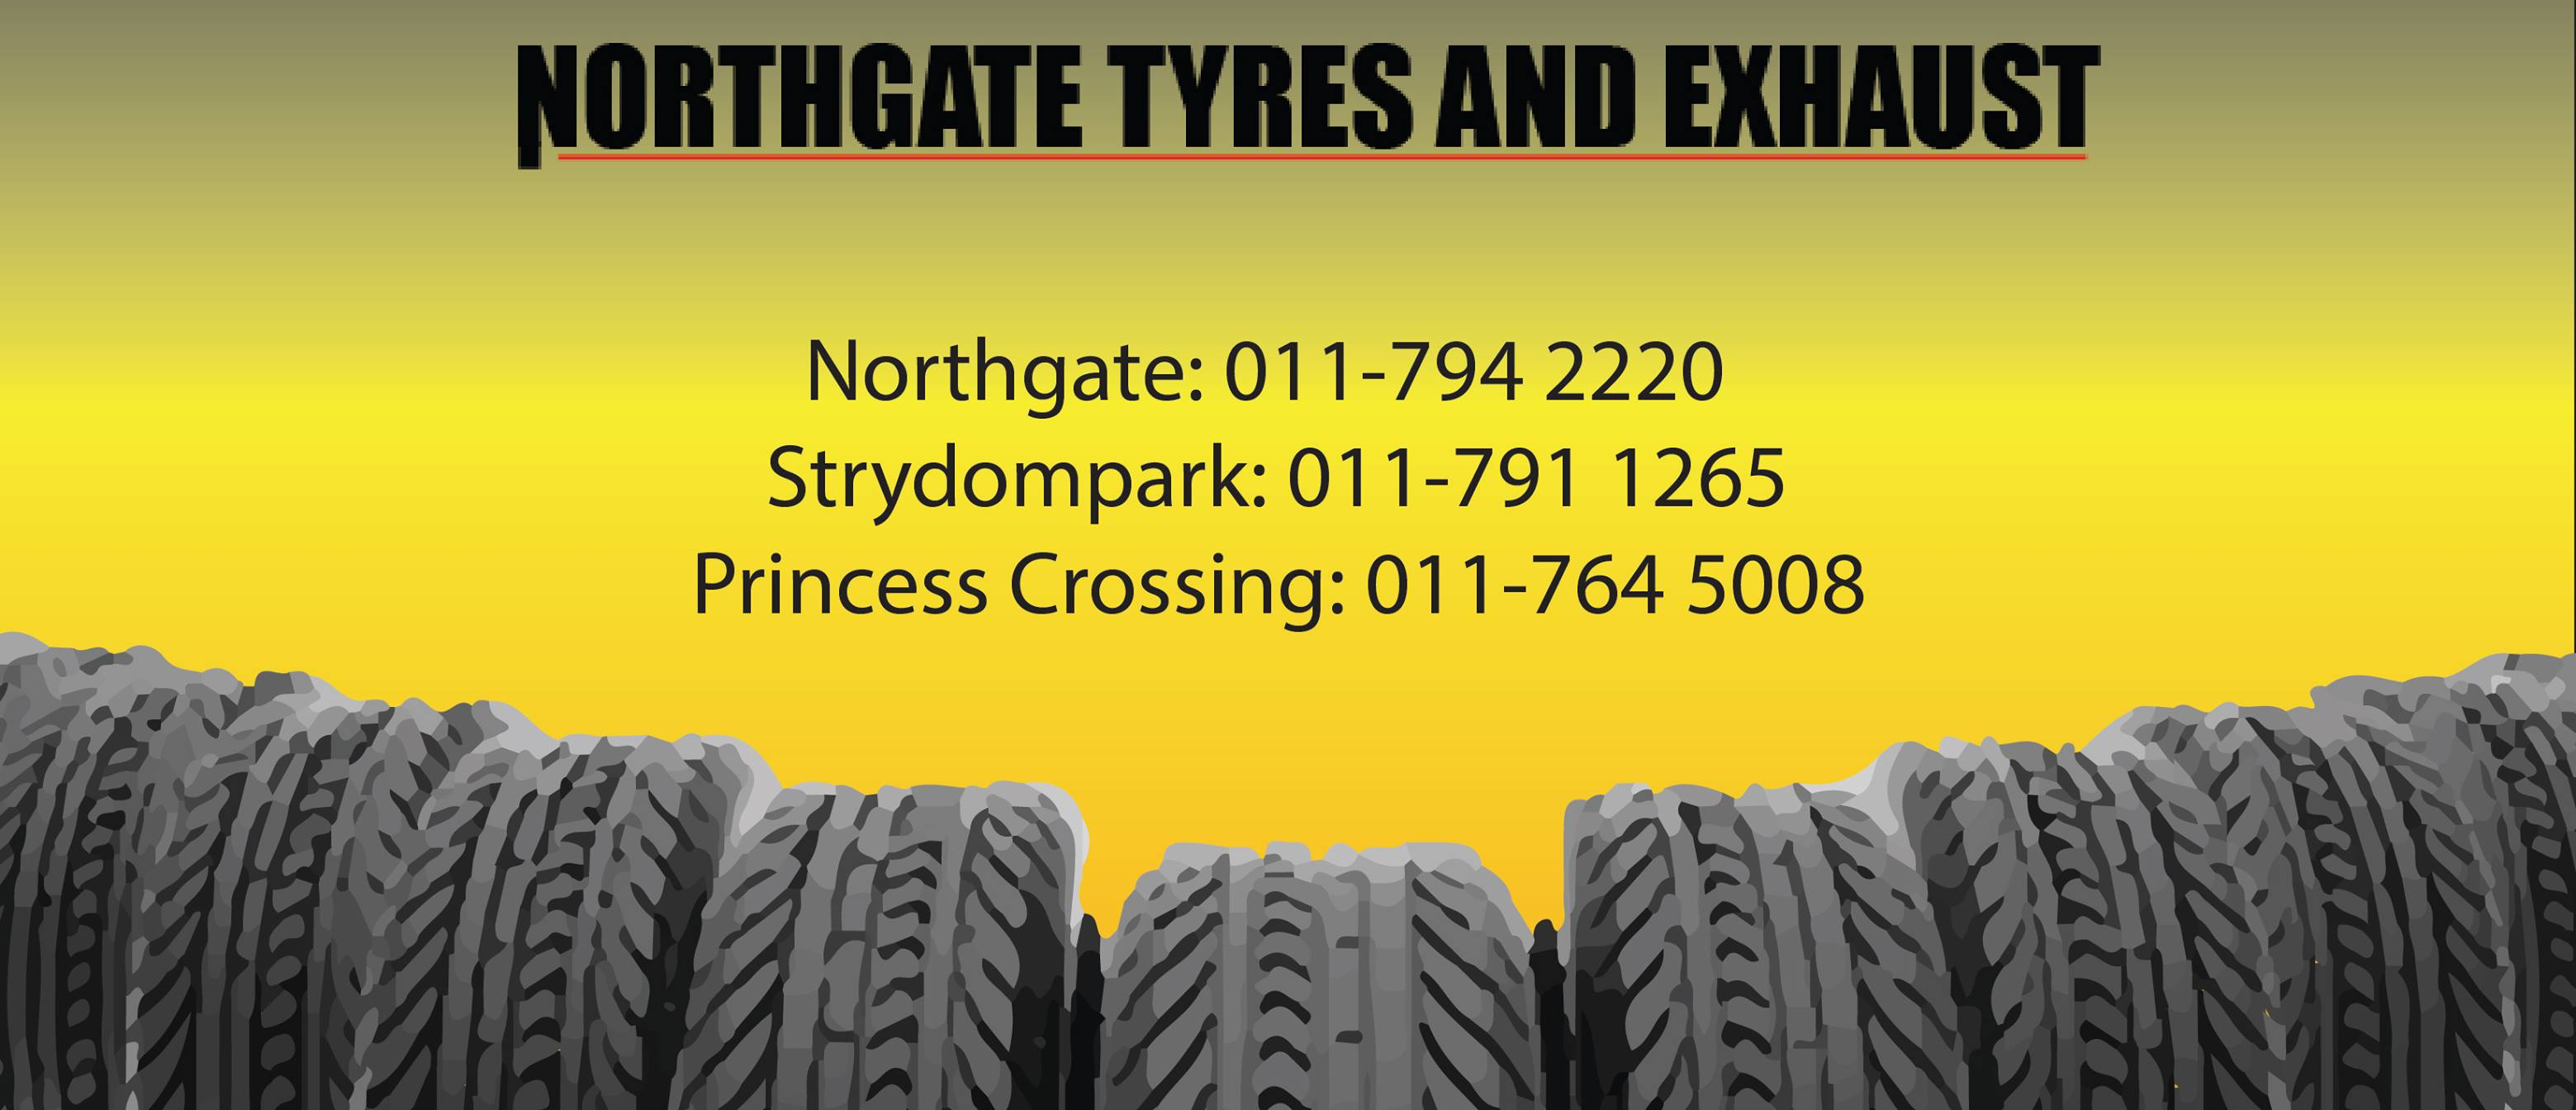 NORTHGATE TYRE AND EXHAUST (PTY) LTD